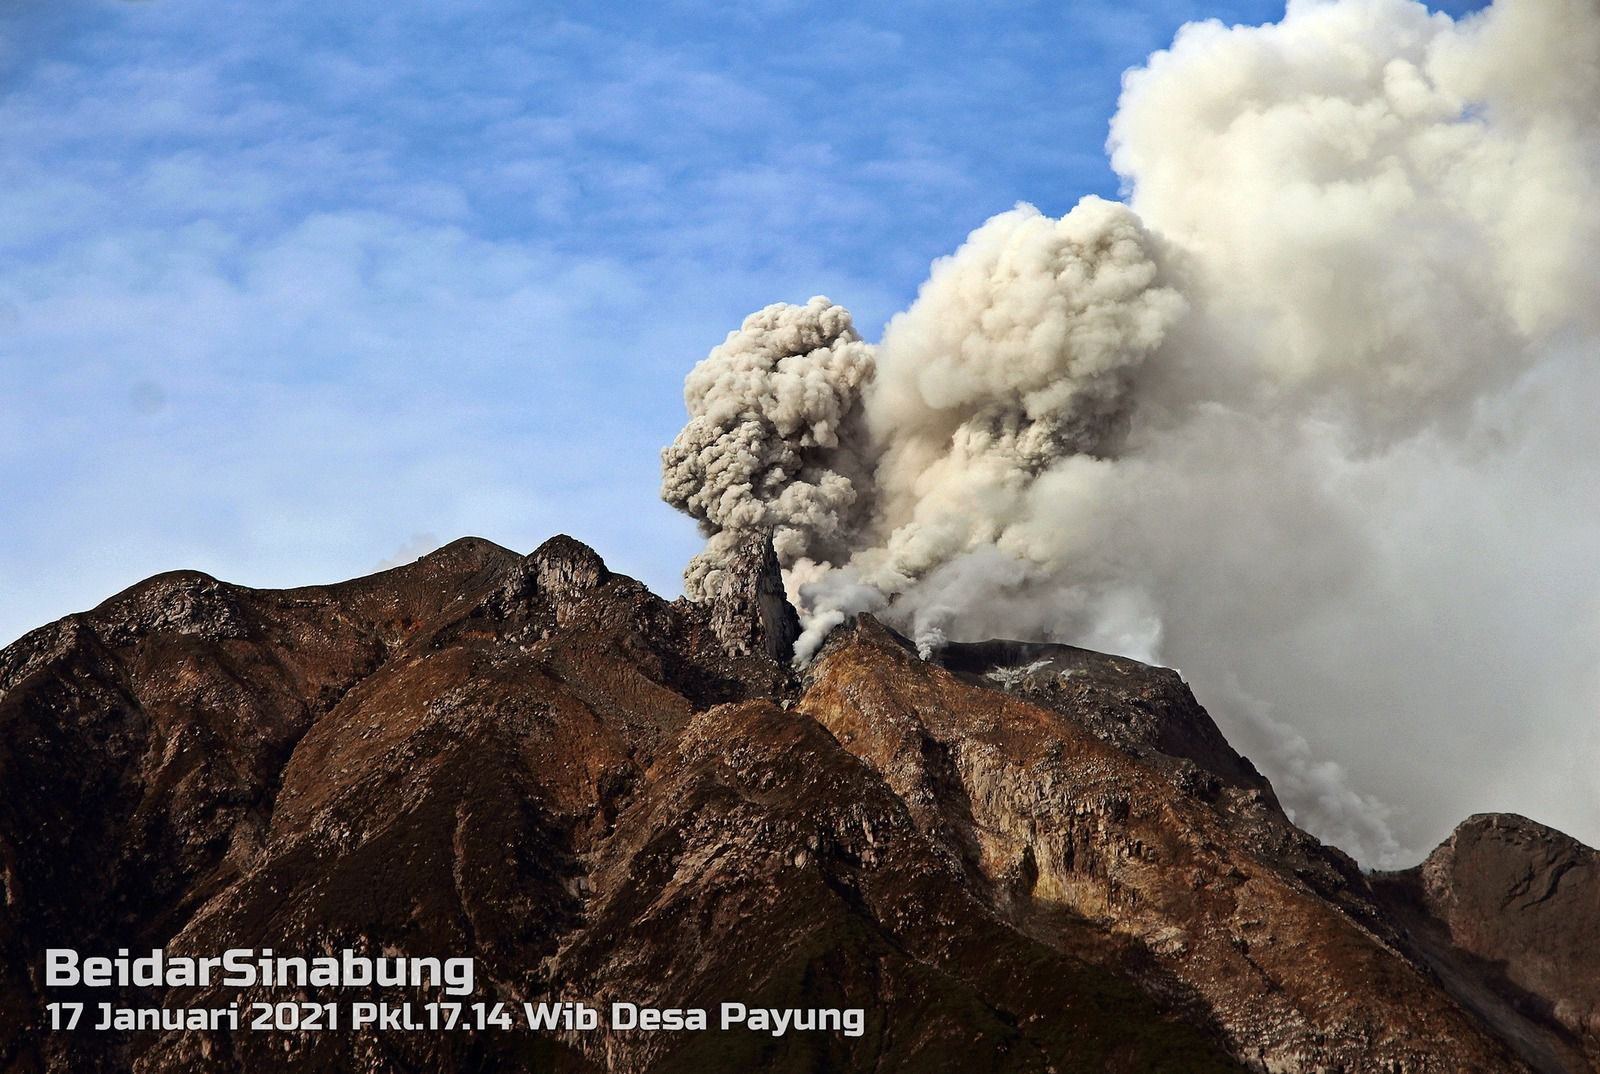 The Sinabung from Payung and the summit dome - 17.01.2021 / 17:14 WIB - photos Firdaus Surbakti via Beidar Sinabung